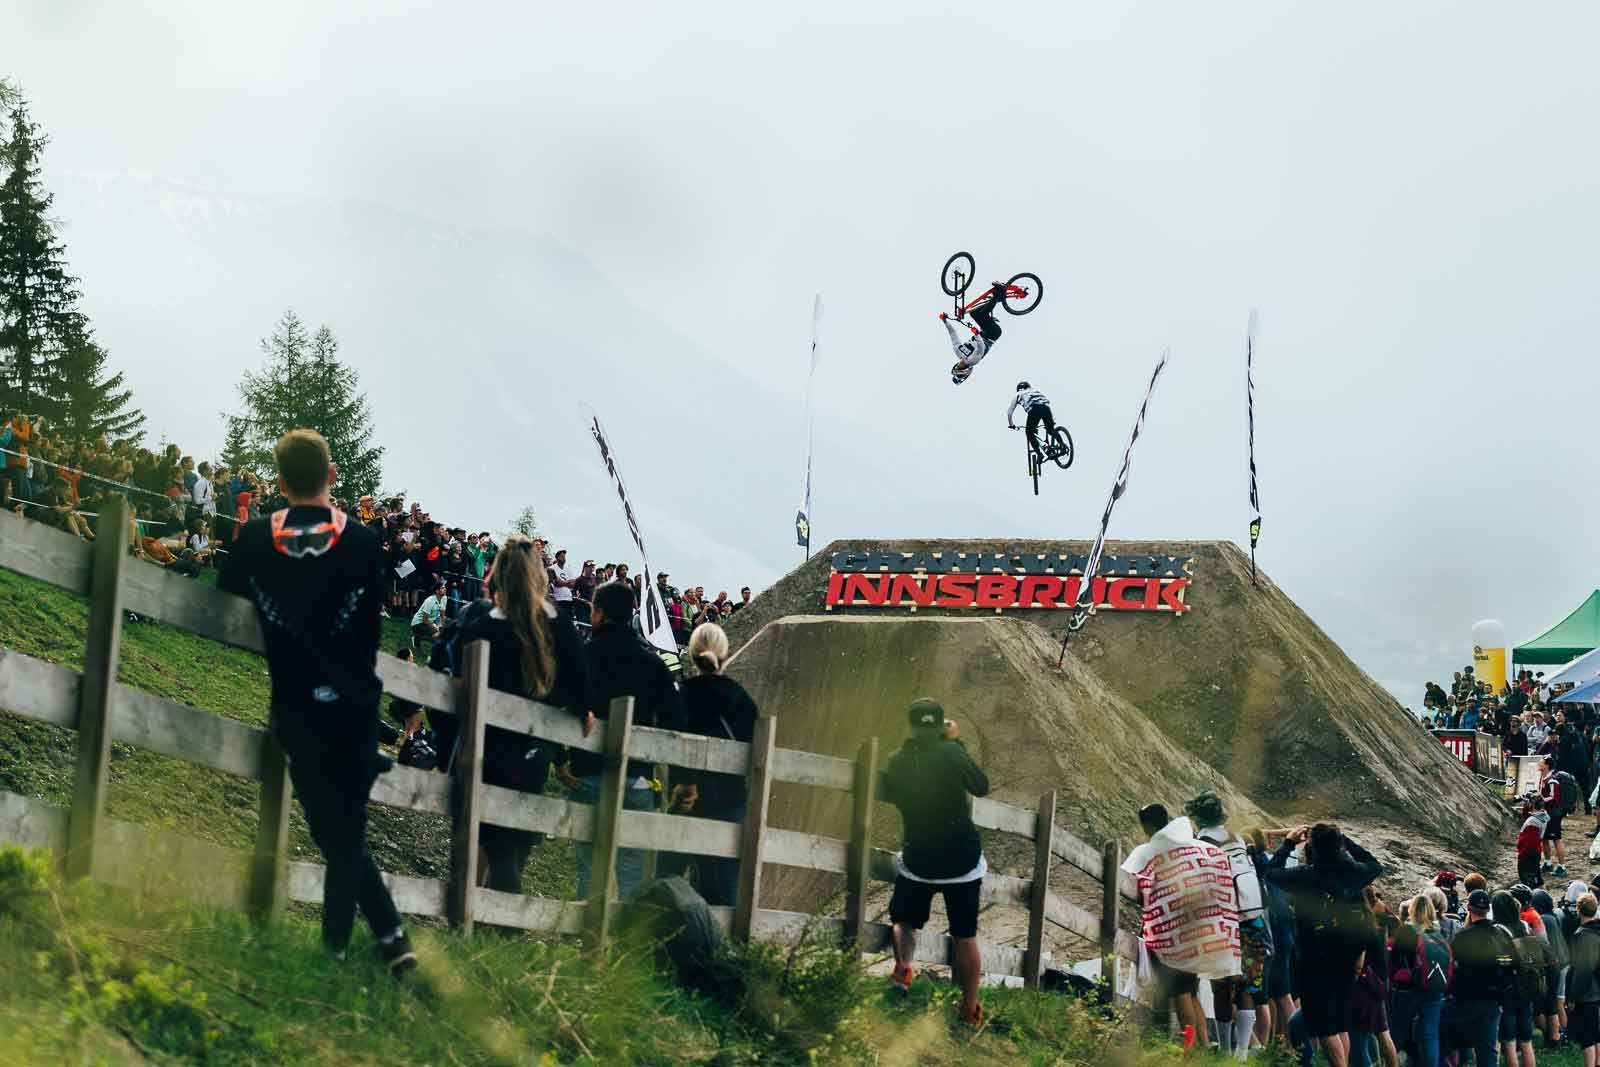 Competitors at the Whip-Off at Crankworx Innsbruck